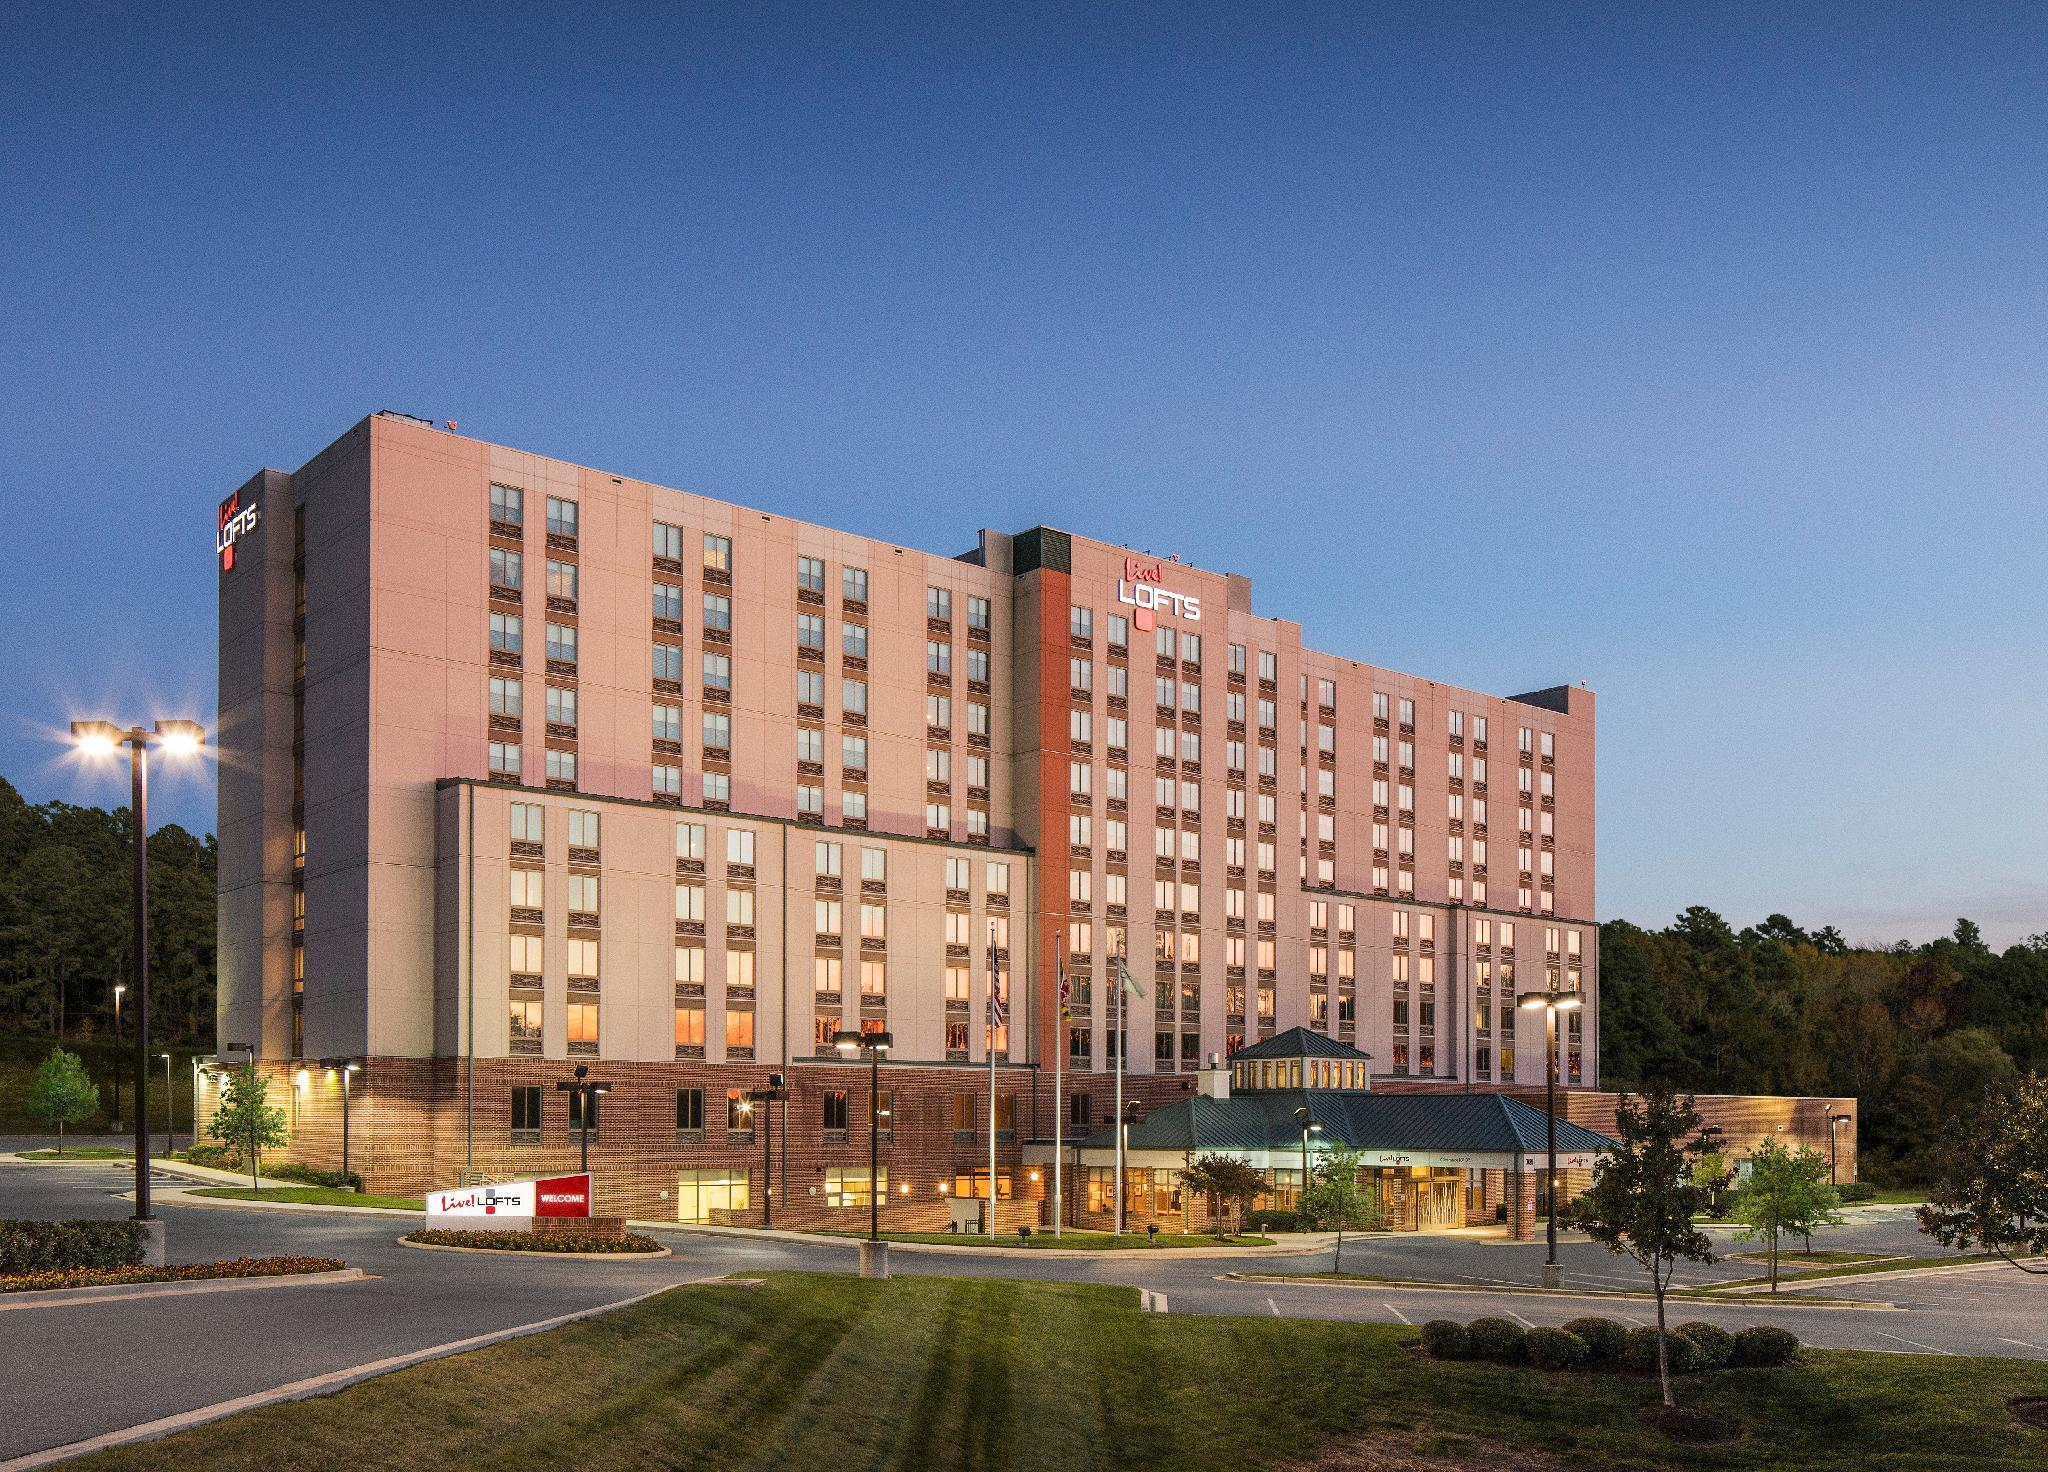 About Live! Lofts Hanover/BWI